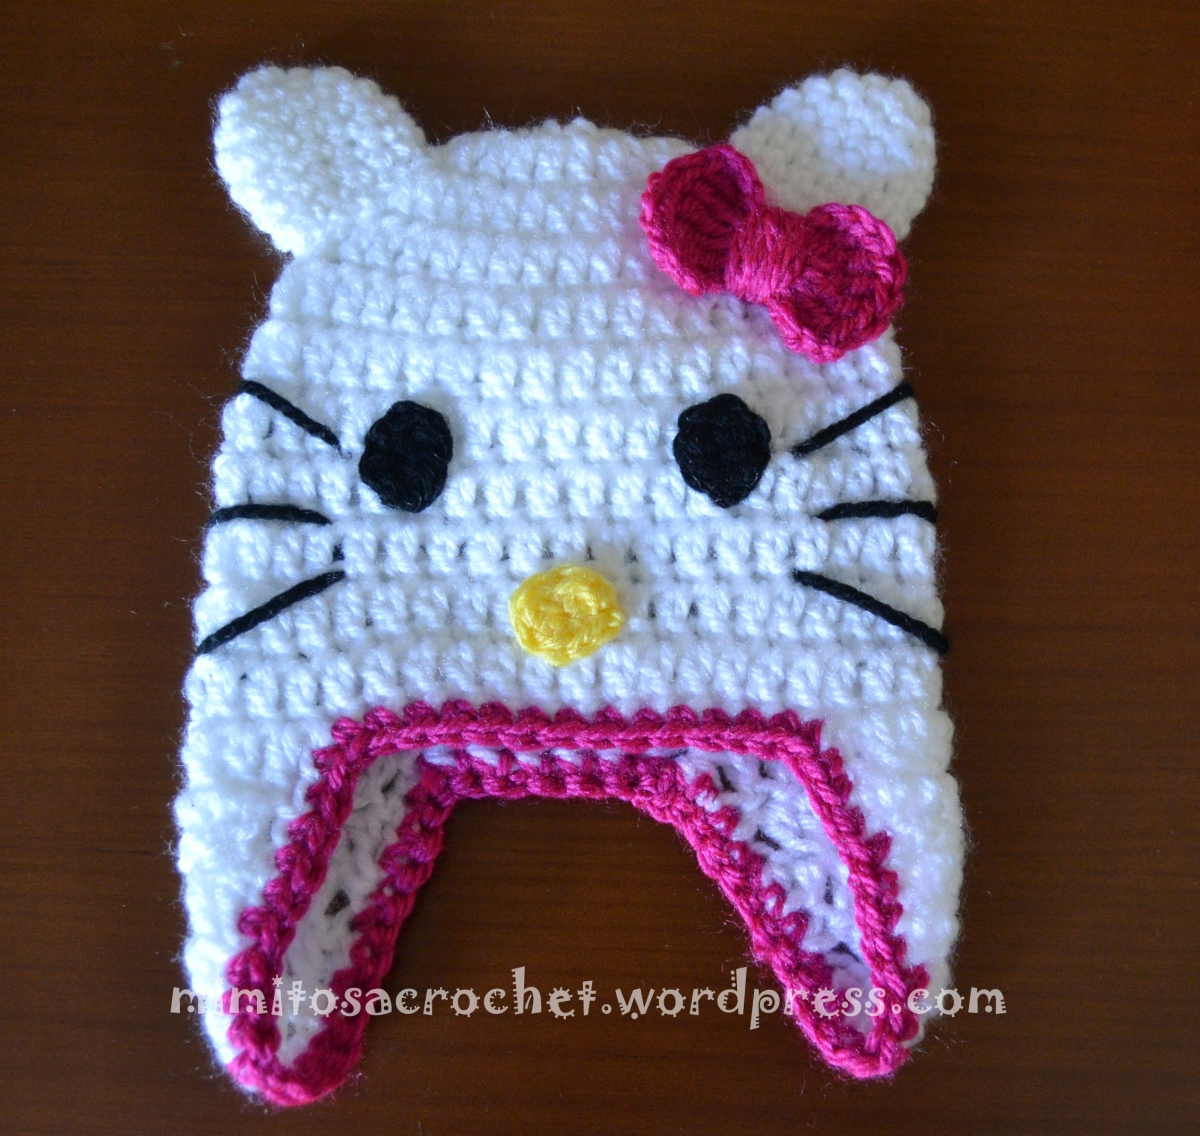 gorro-hello-kitty1.jpg?w=1200